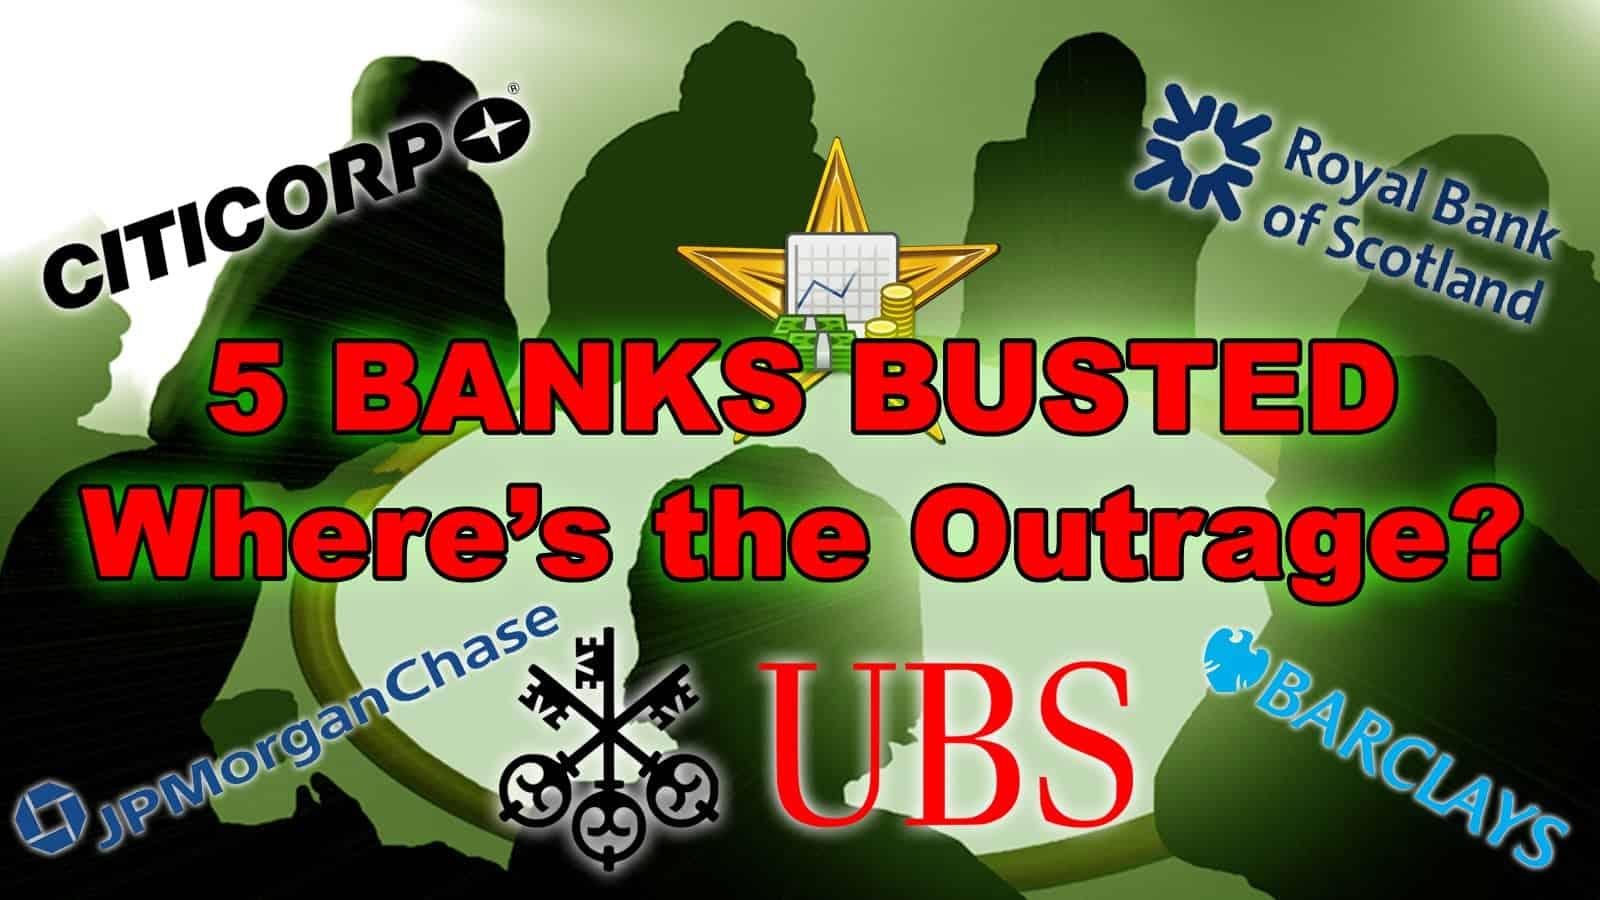 5 BANKS BUSTED! Where's the Outrage?